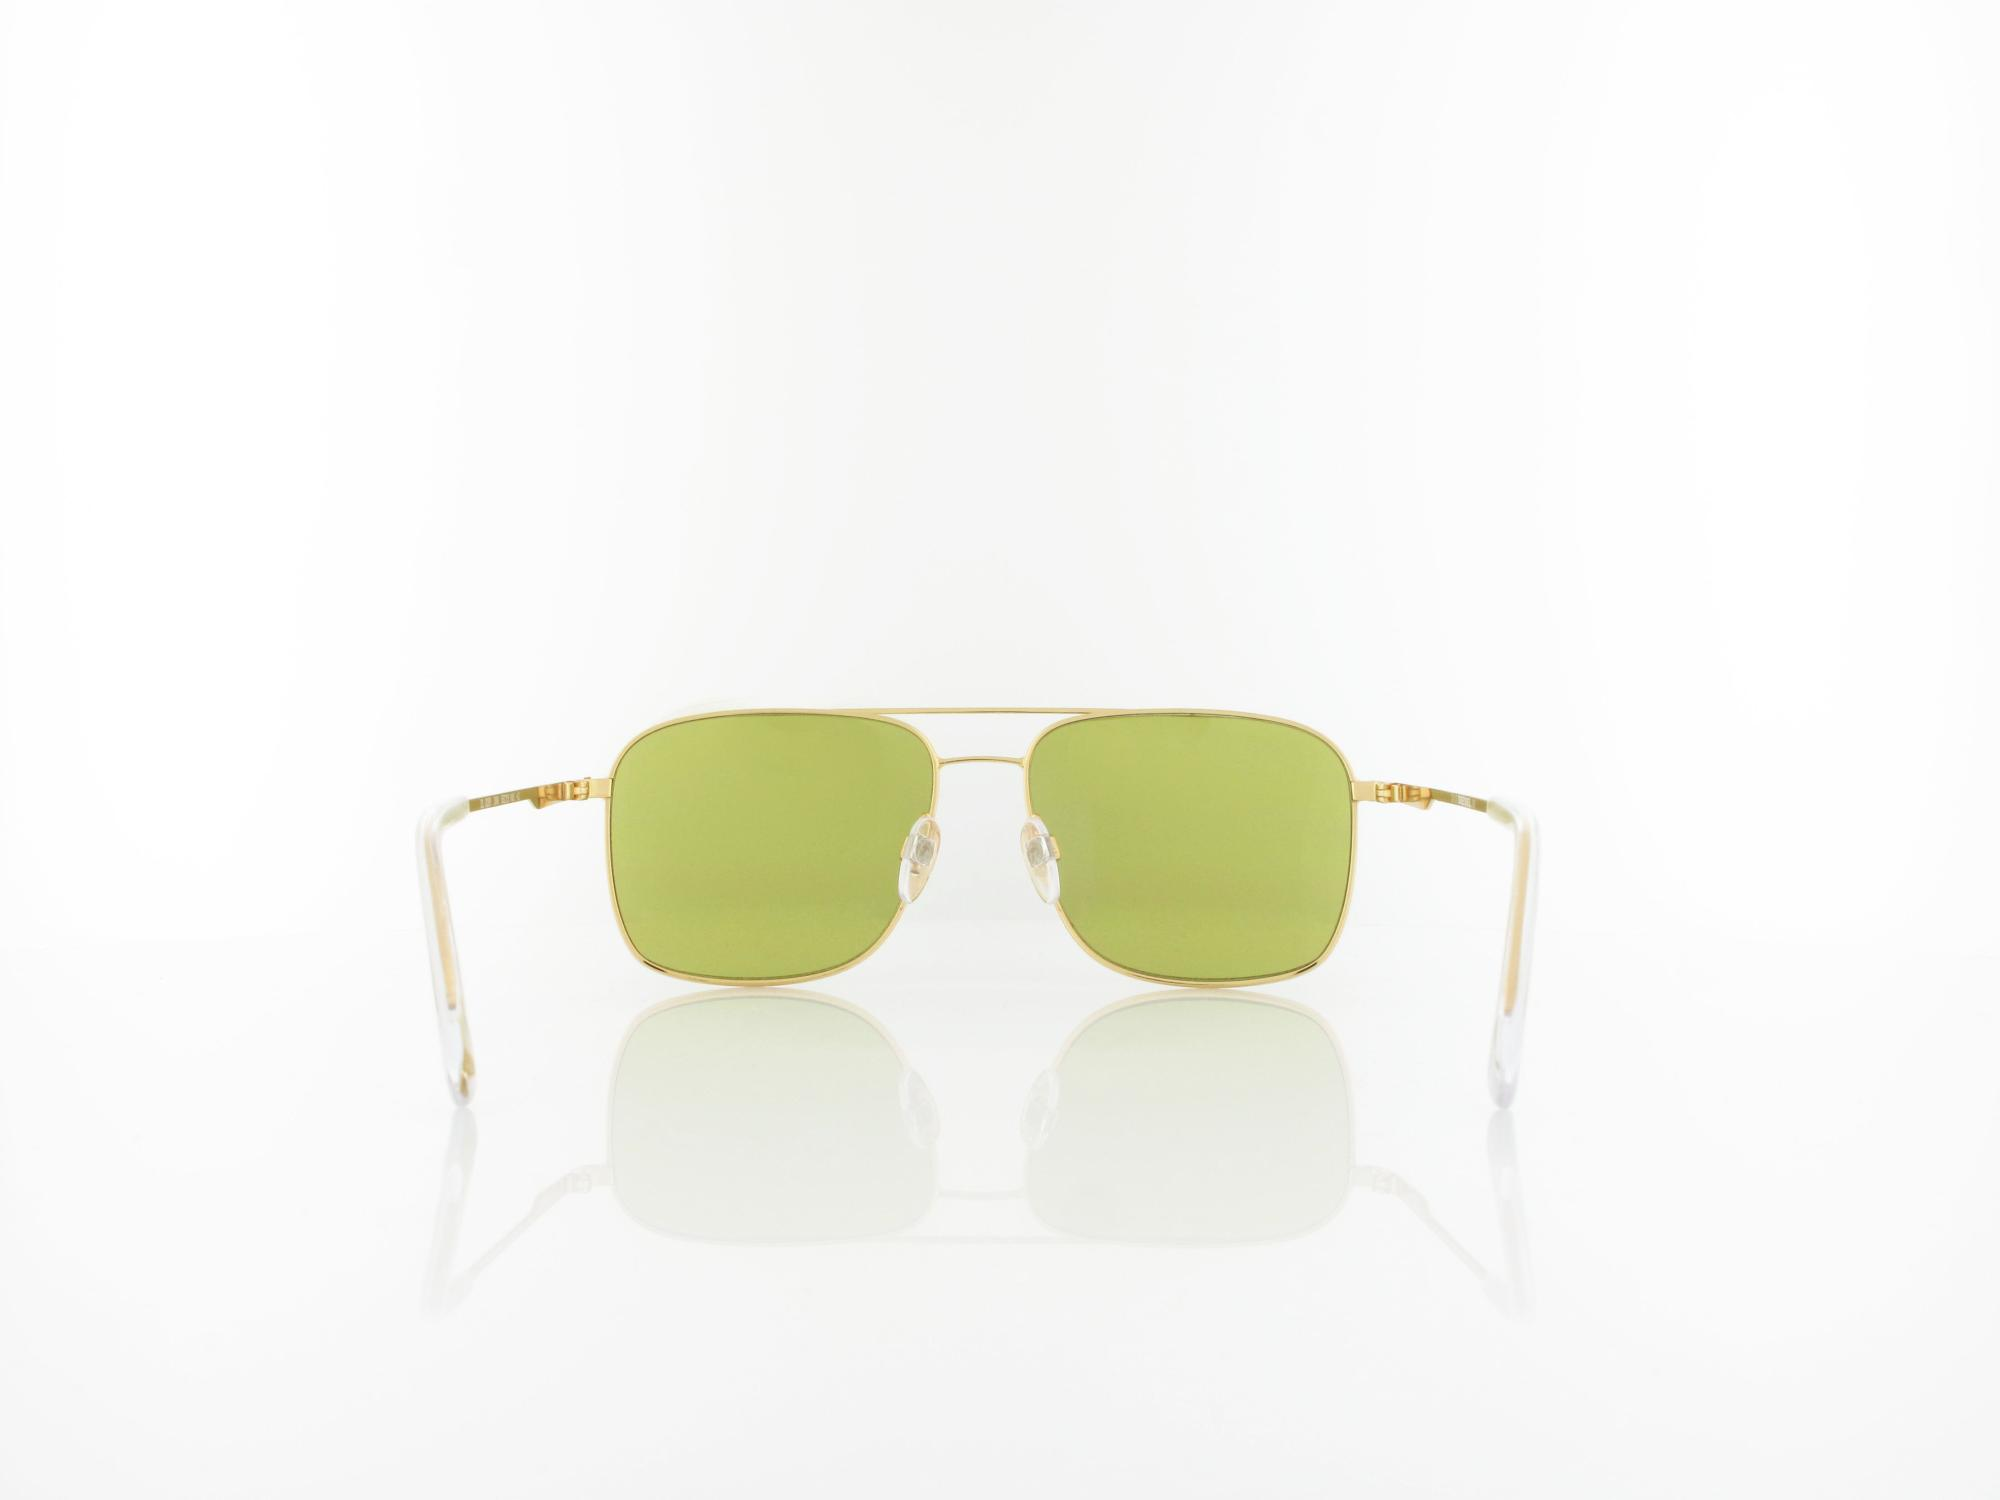 Diesel | DL0295/S 30N 55 | shiny gold / green